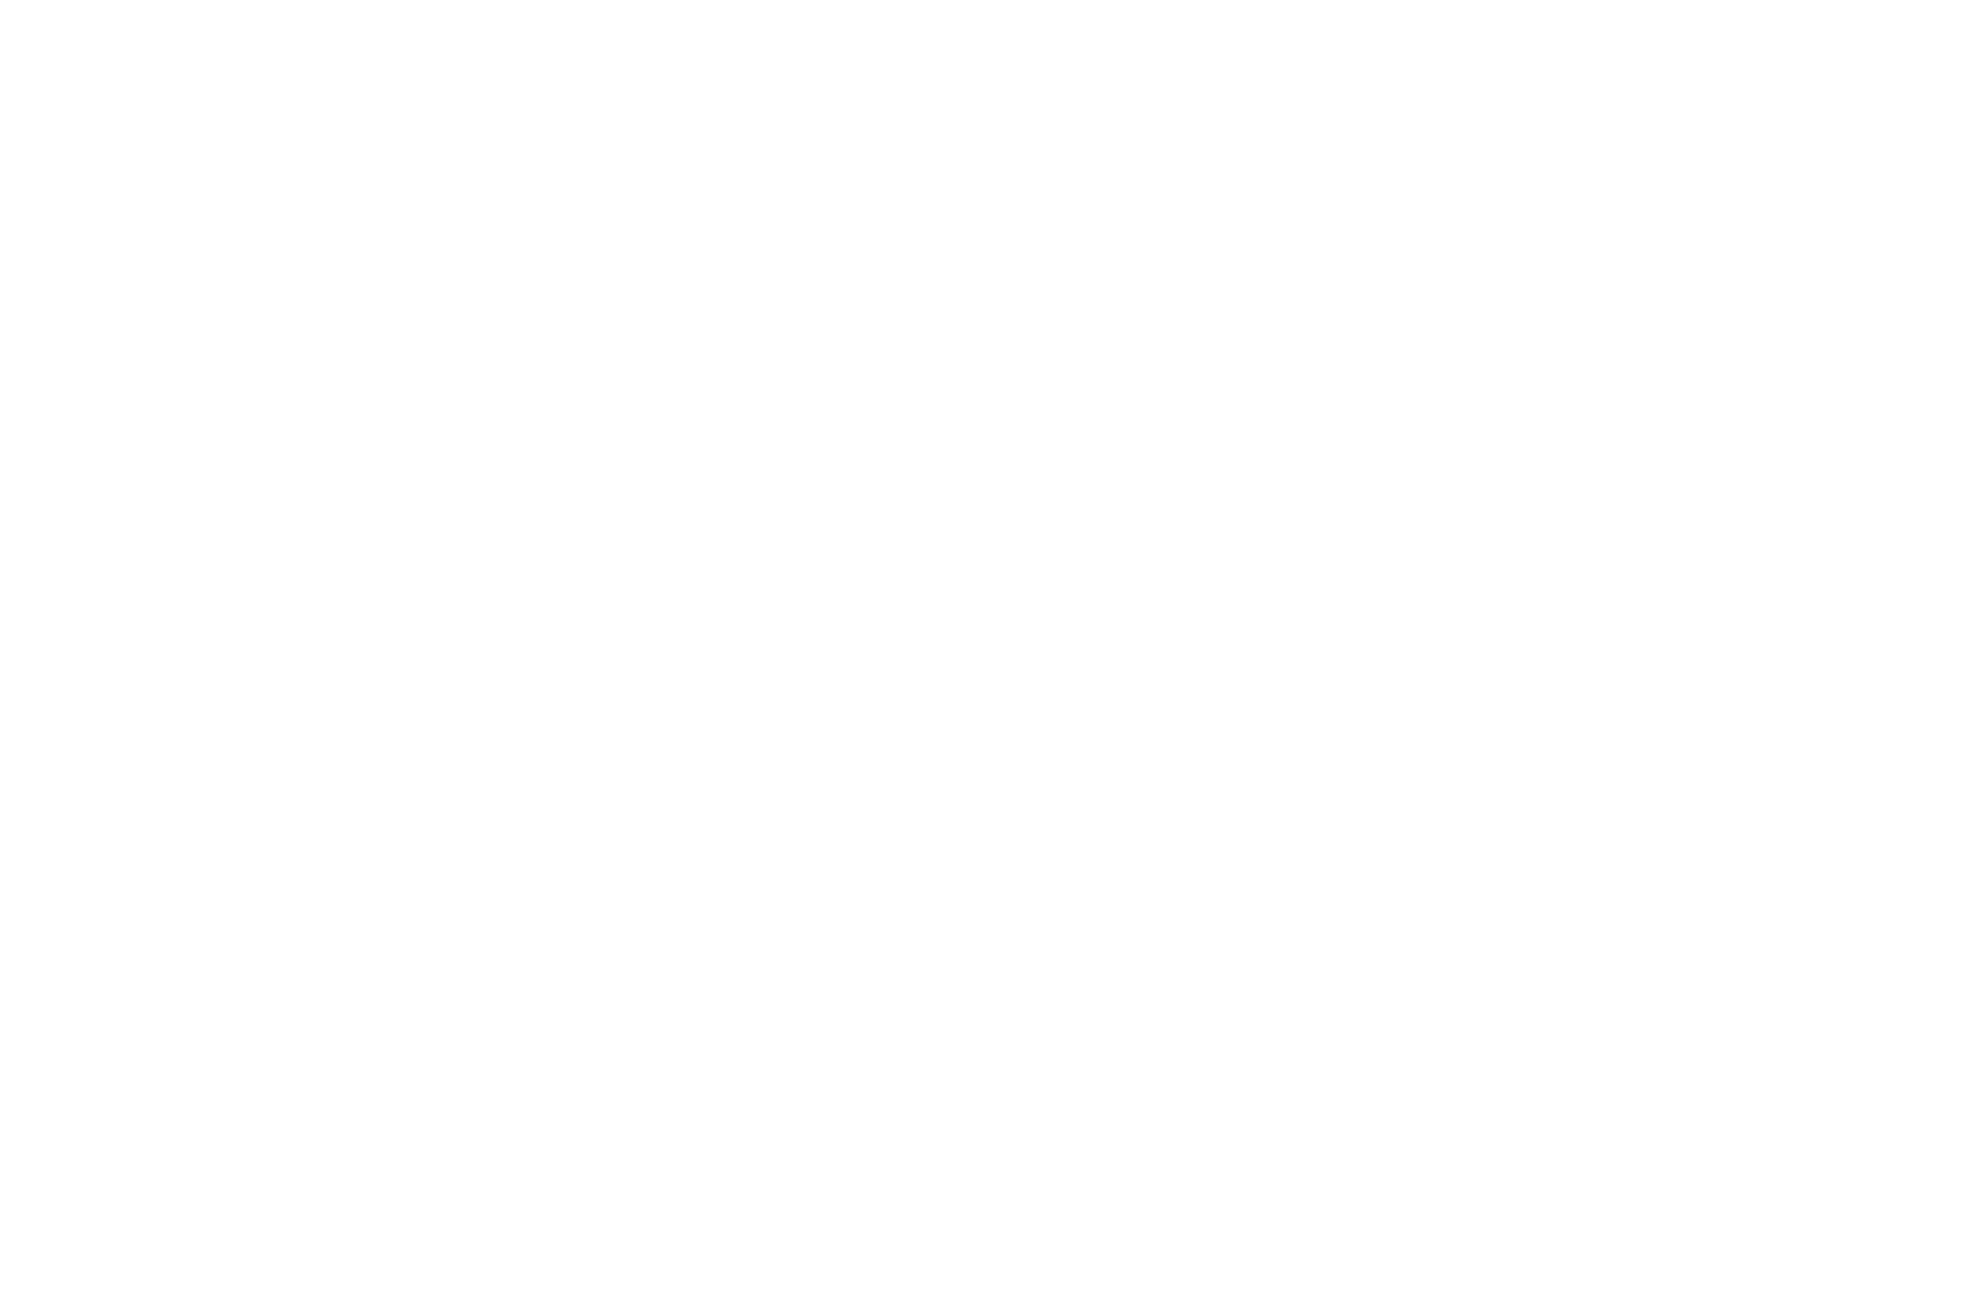 Ben Jones Celebrity Clayshoot - PNG